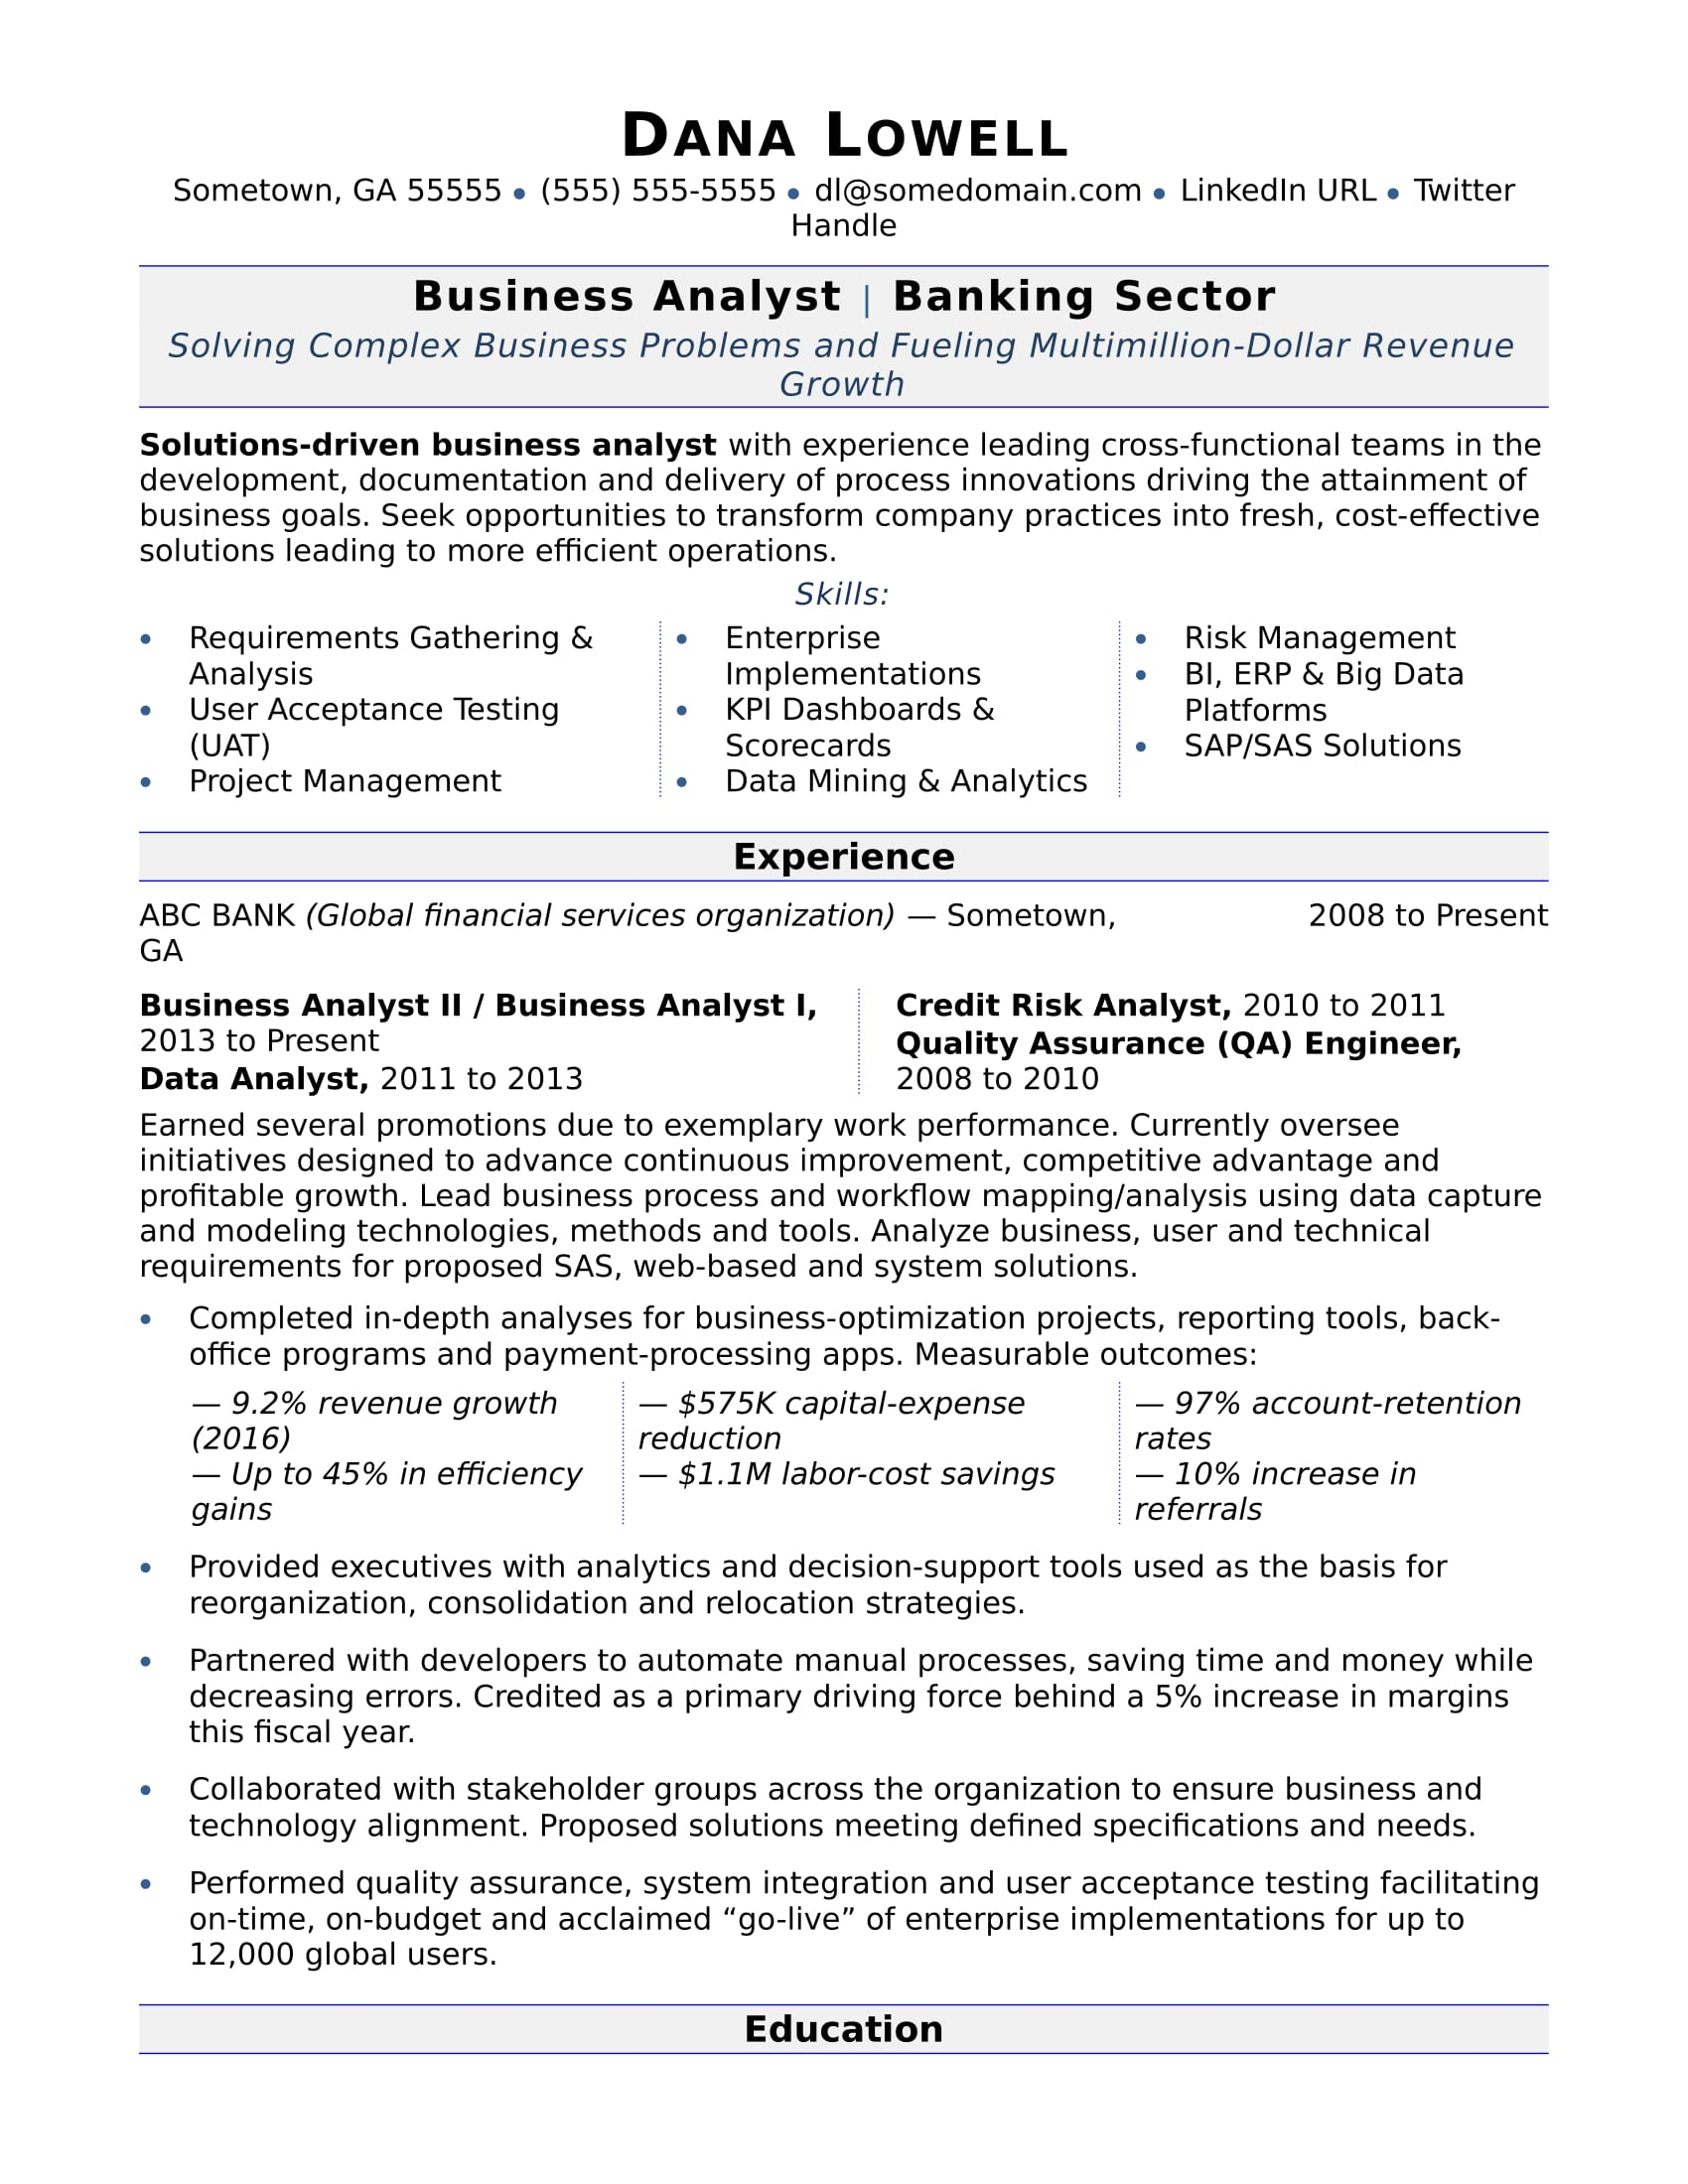 Business analyst resume sample monster business analyst resume sample friedricerecipe Image collections